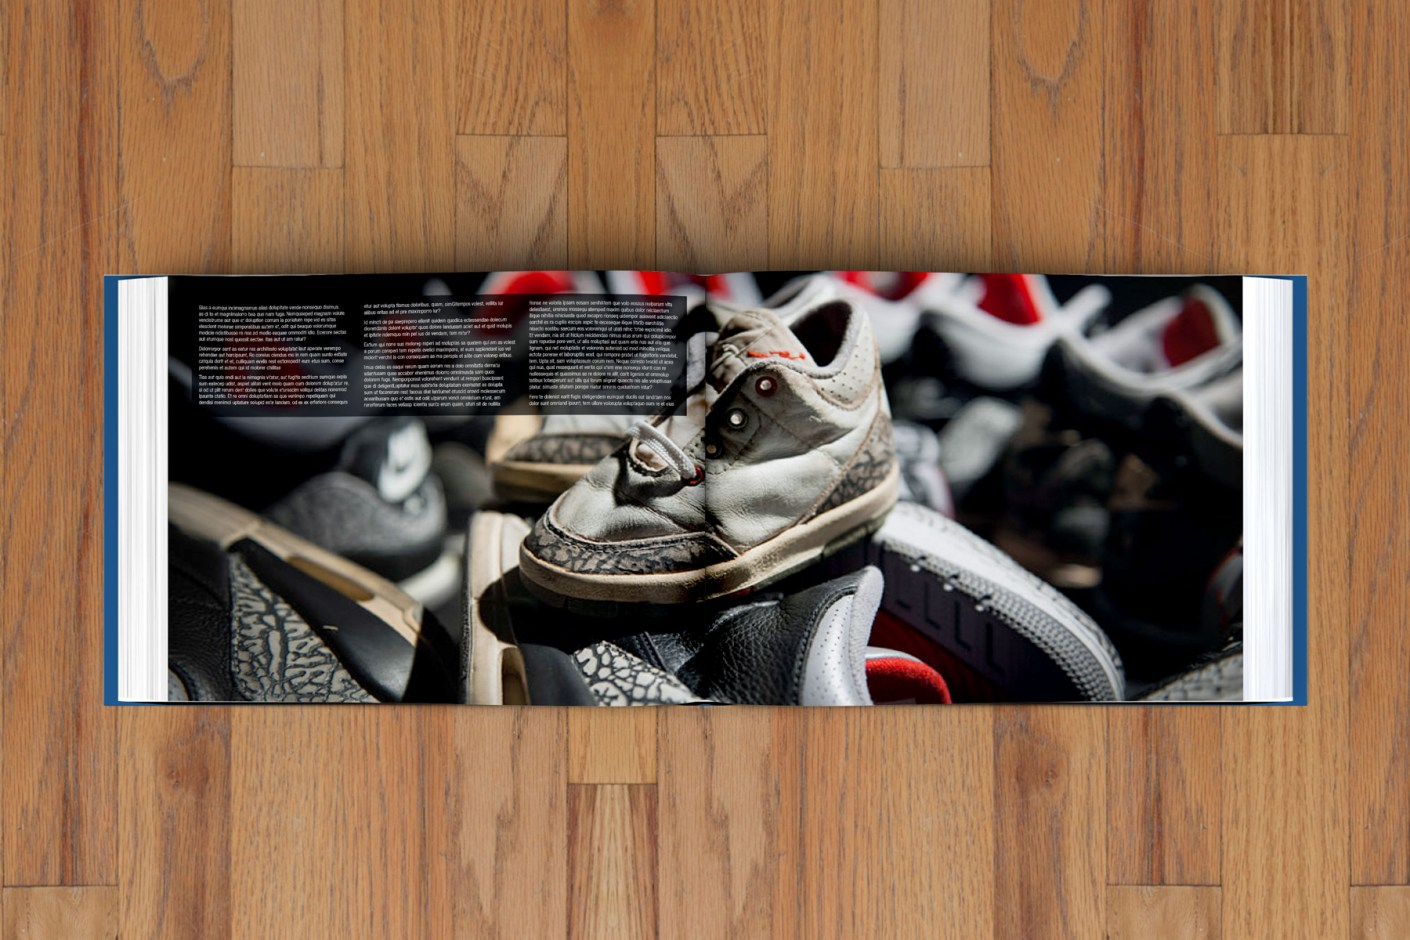 Image of Encyclopedia of Air Jordan